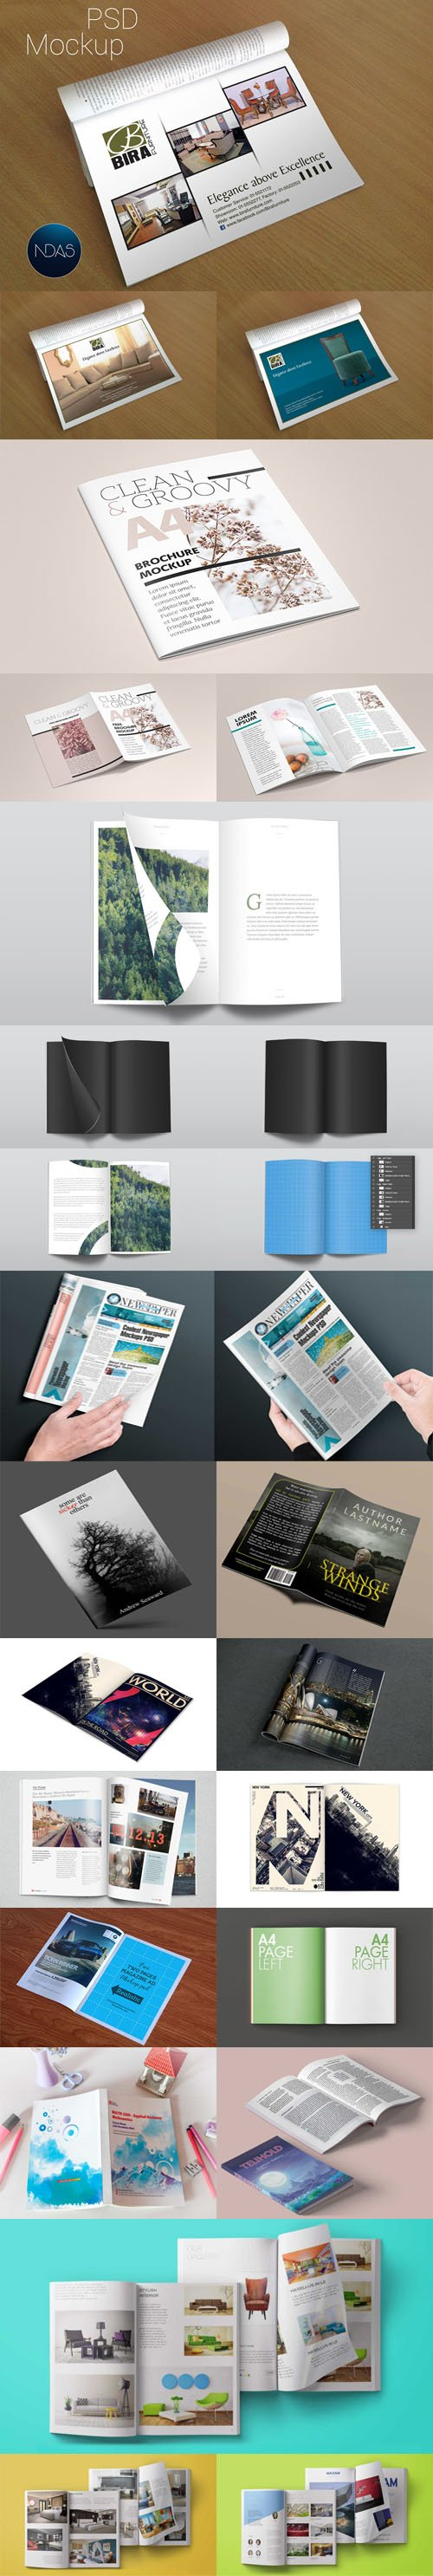 Top 16 Magazines PSD Mockups Collection